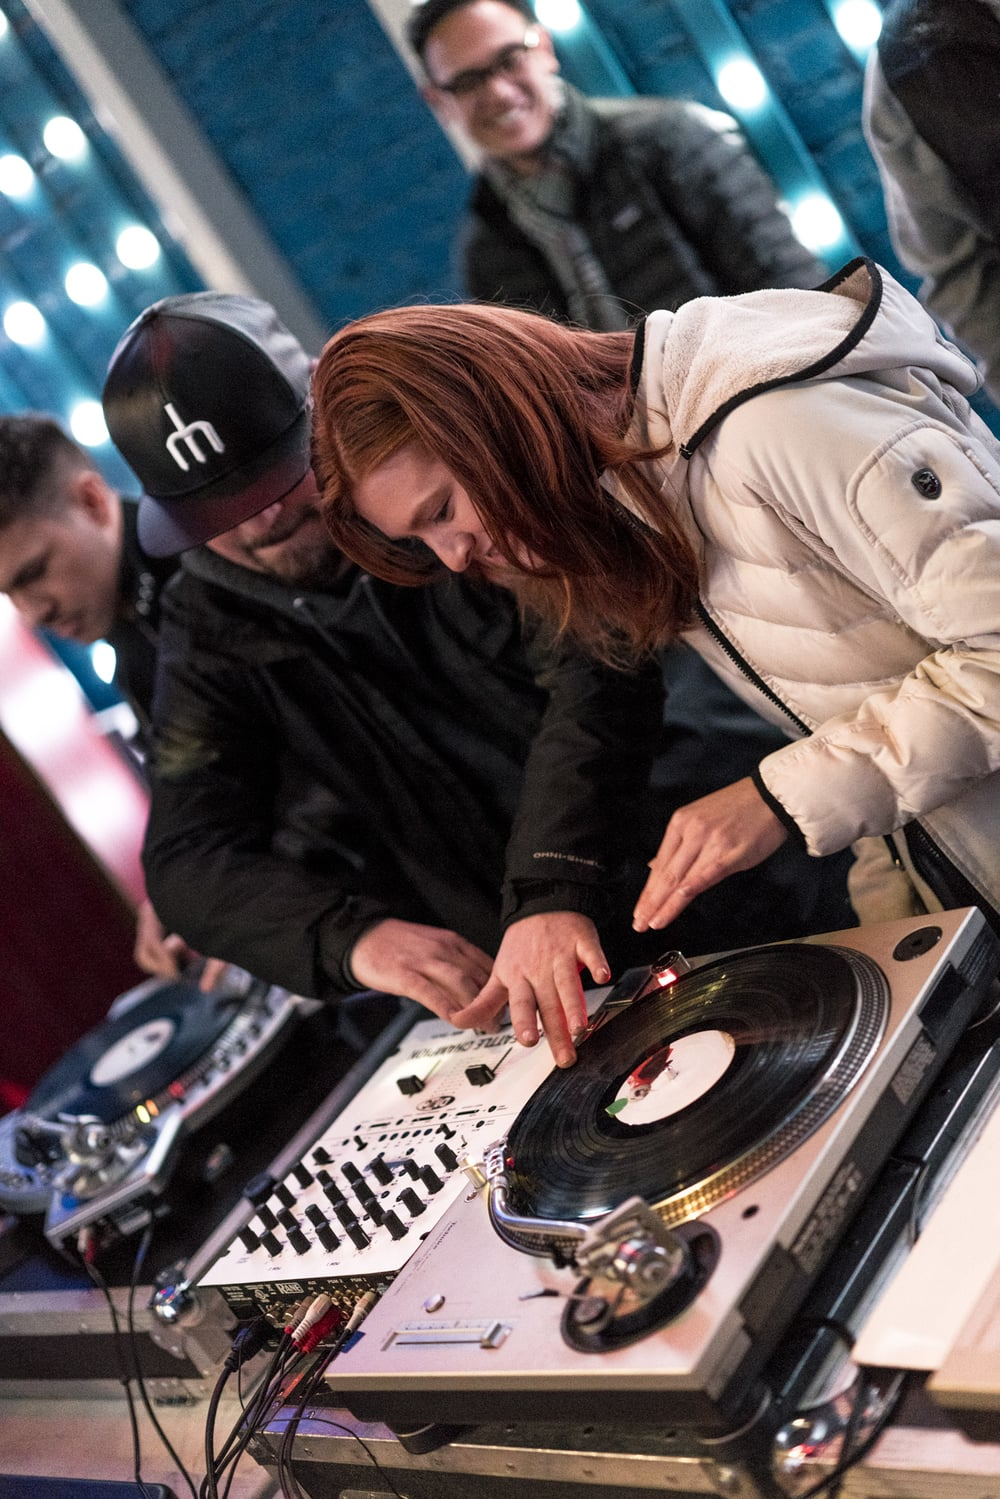 2016_01_07_Skratch Lounge_0322_Export.jpg